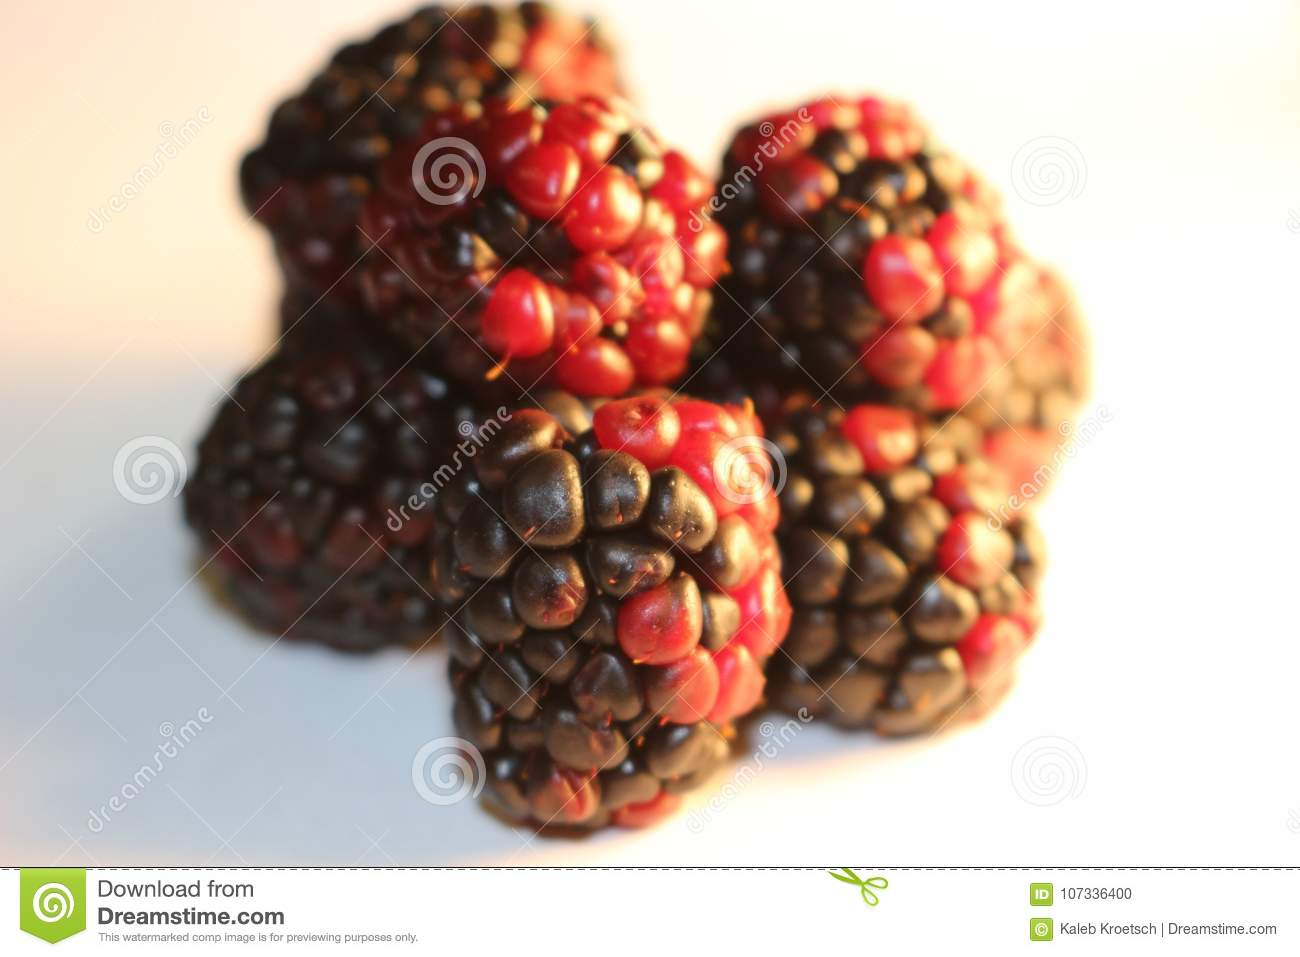 Blackberries isolated that look juicy and ripe. Blackberries are from the Rubus genus in the Rosaceae family